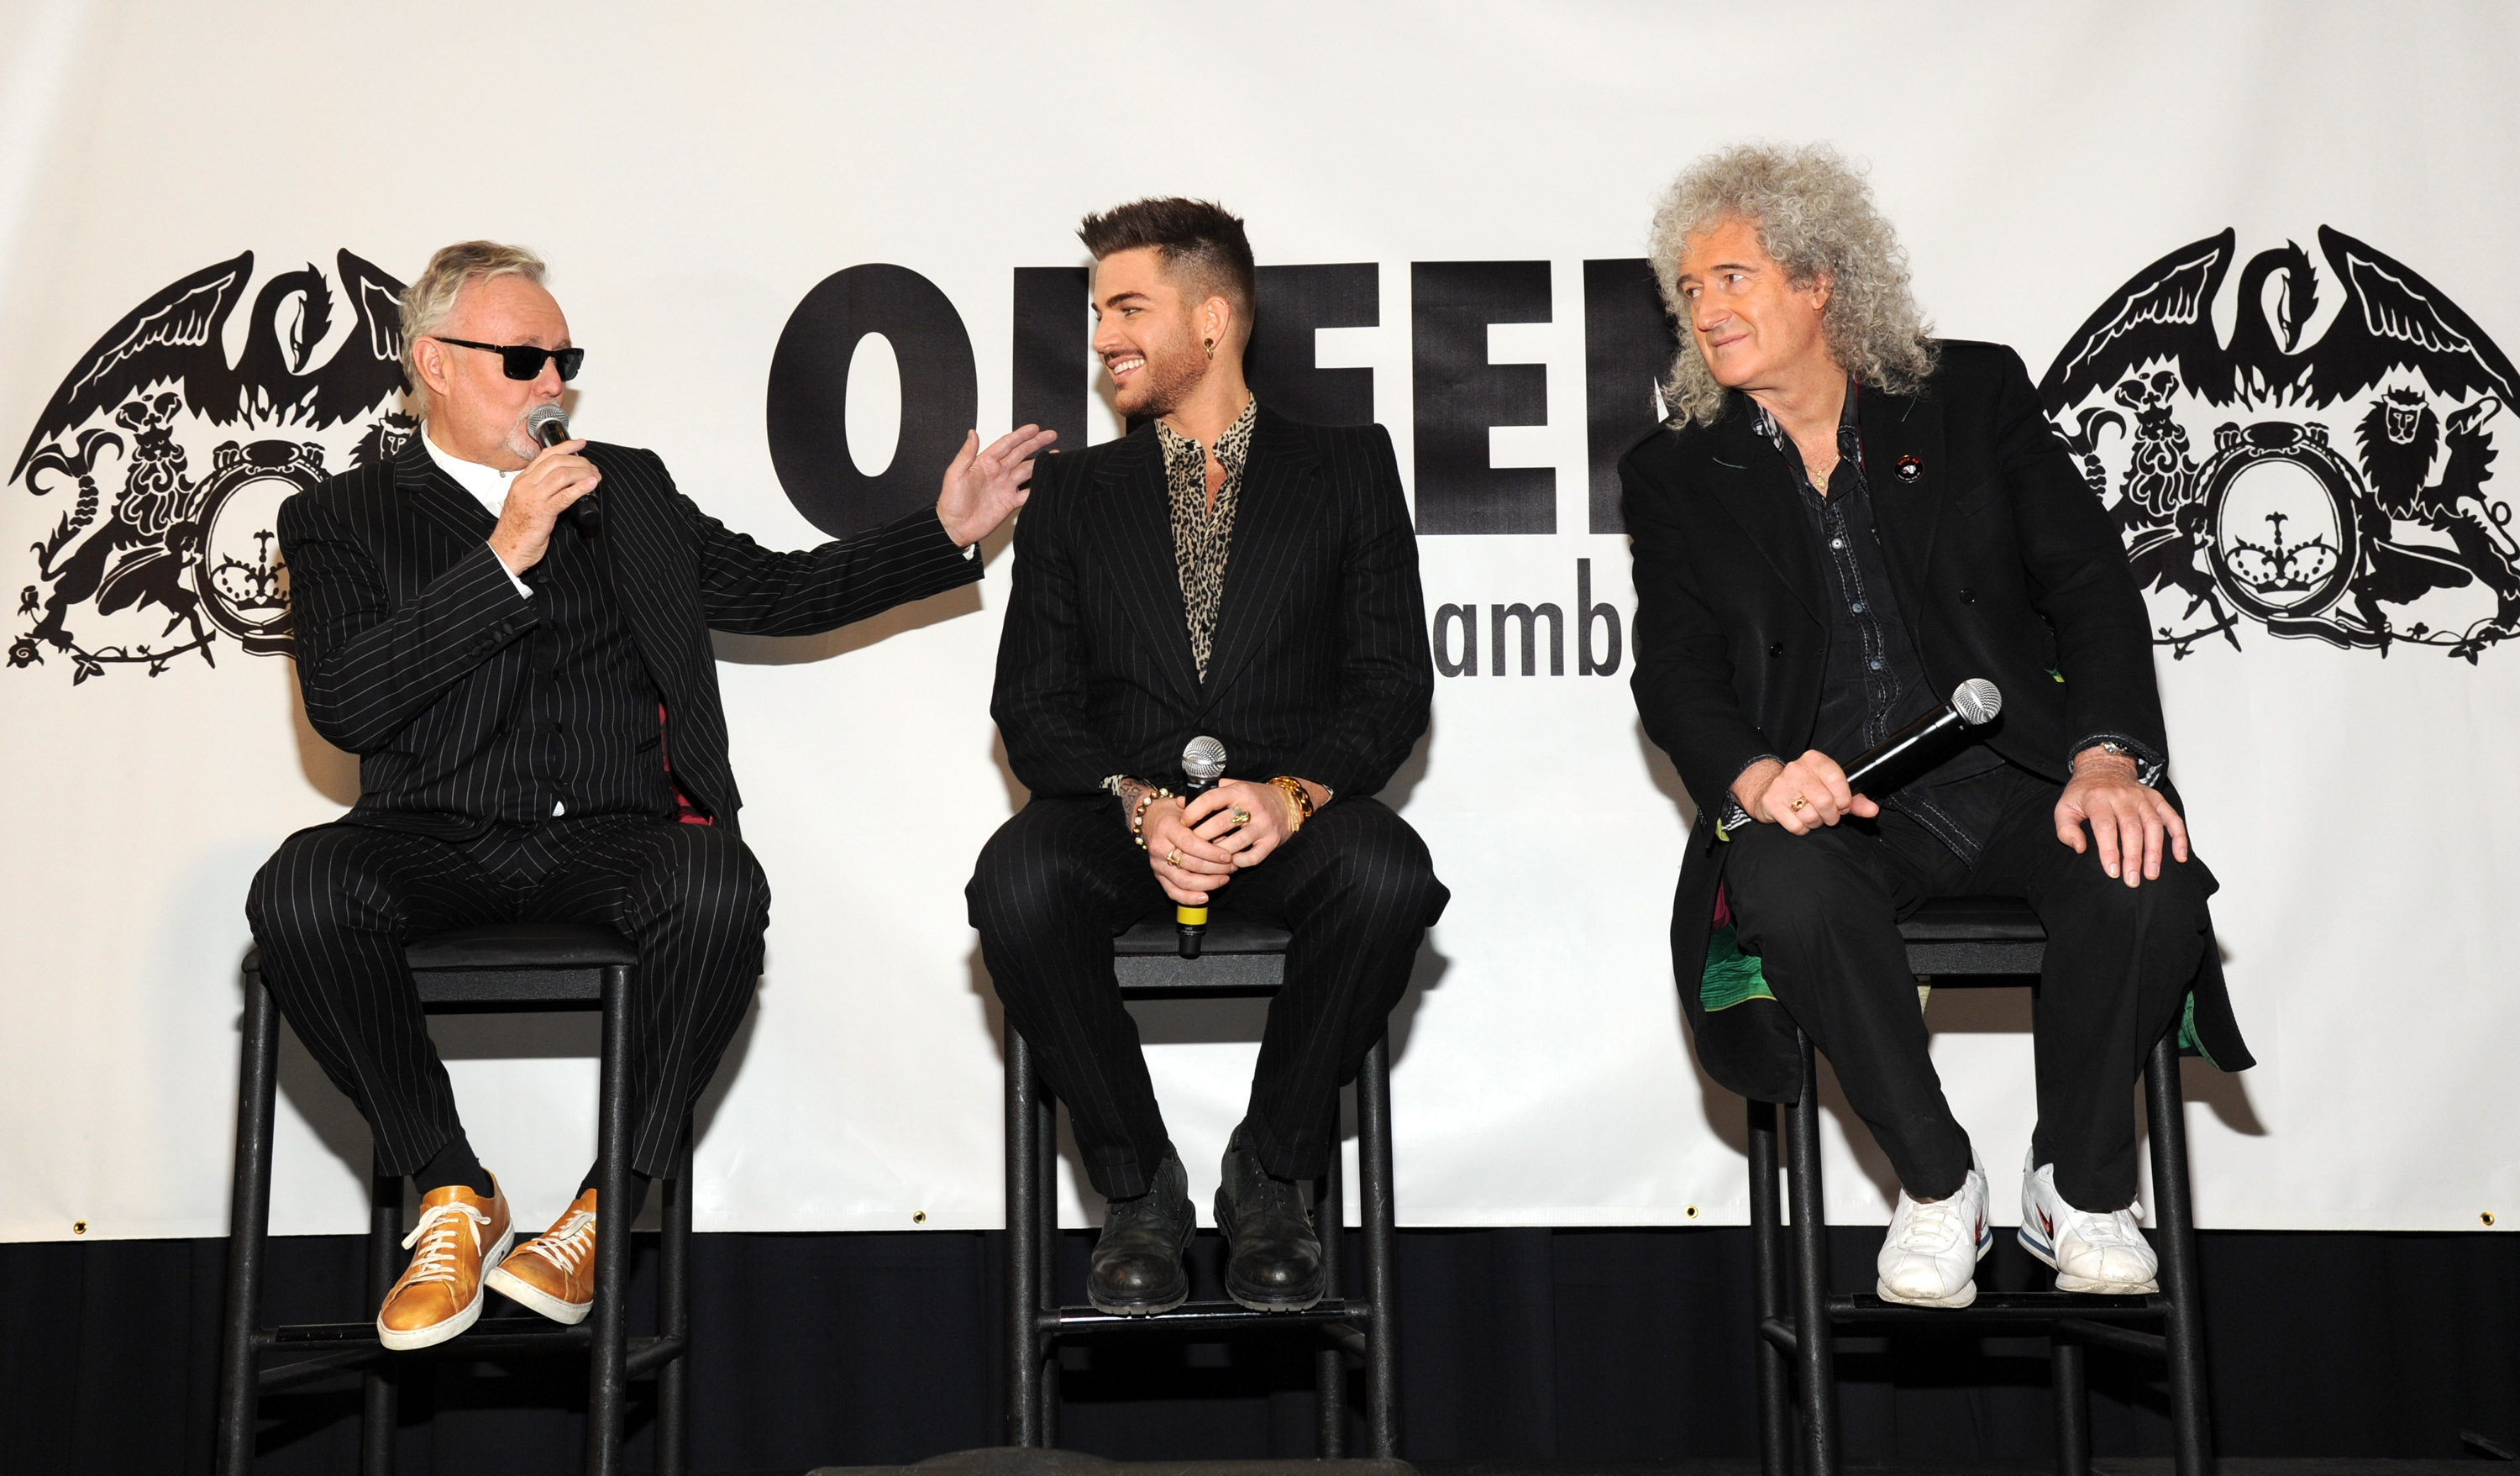 Roger Taylor, Adam Lambert and Brian May during Queen (Brian May and Roger Taylor) + Adam Lambert North American tour announcement at Madison Square Garden on March 6, 2014 in New York City.